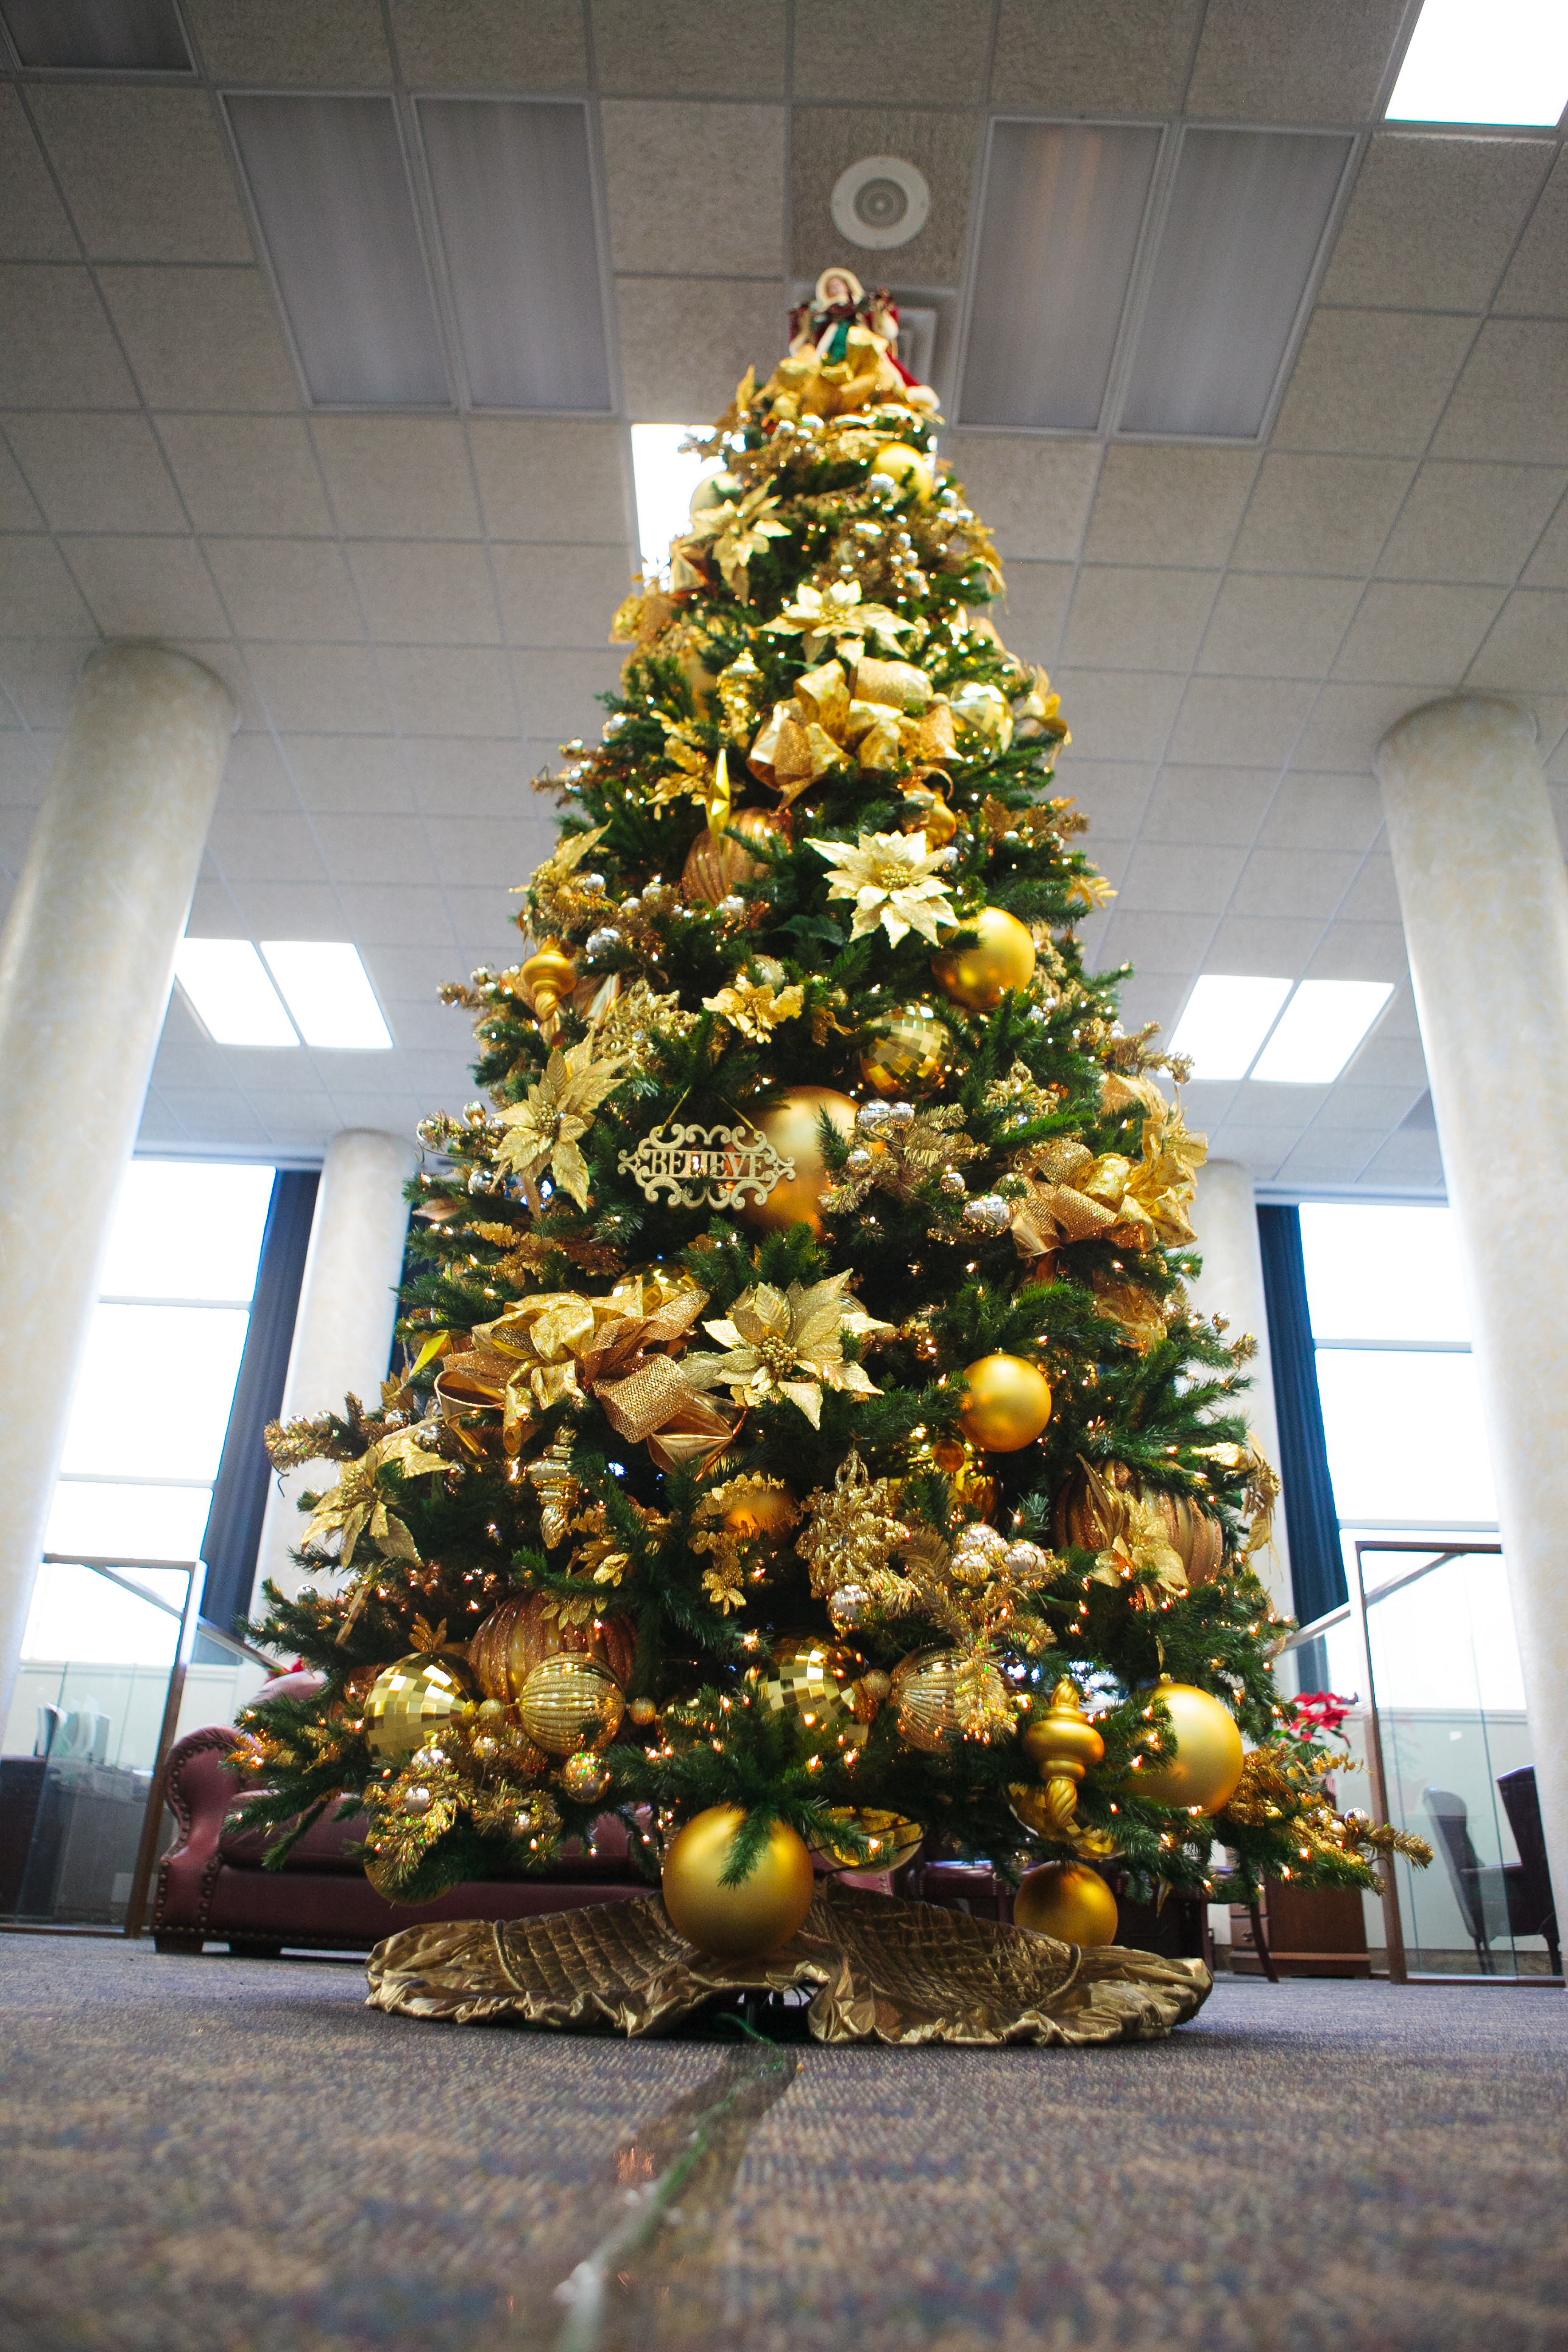 Unique Tree Christmas Tree and Decorations Of Delightful 50 Pictures Christmas Tree and Decorations